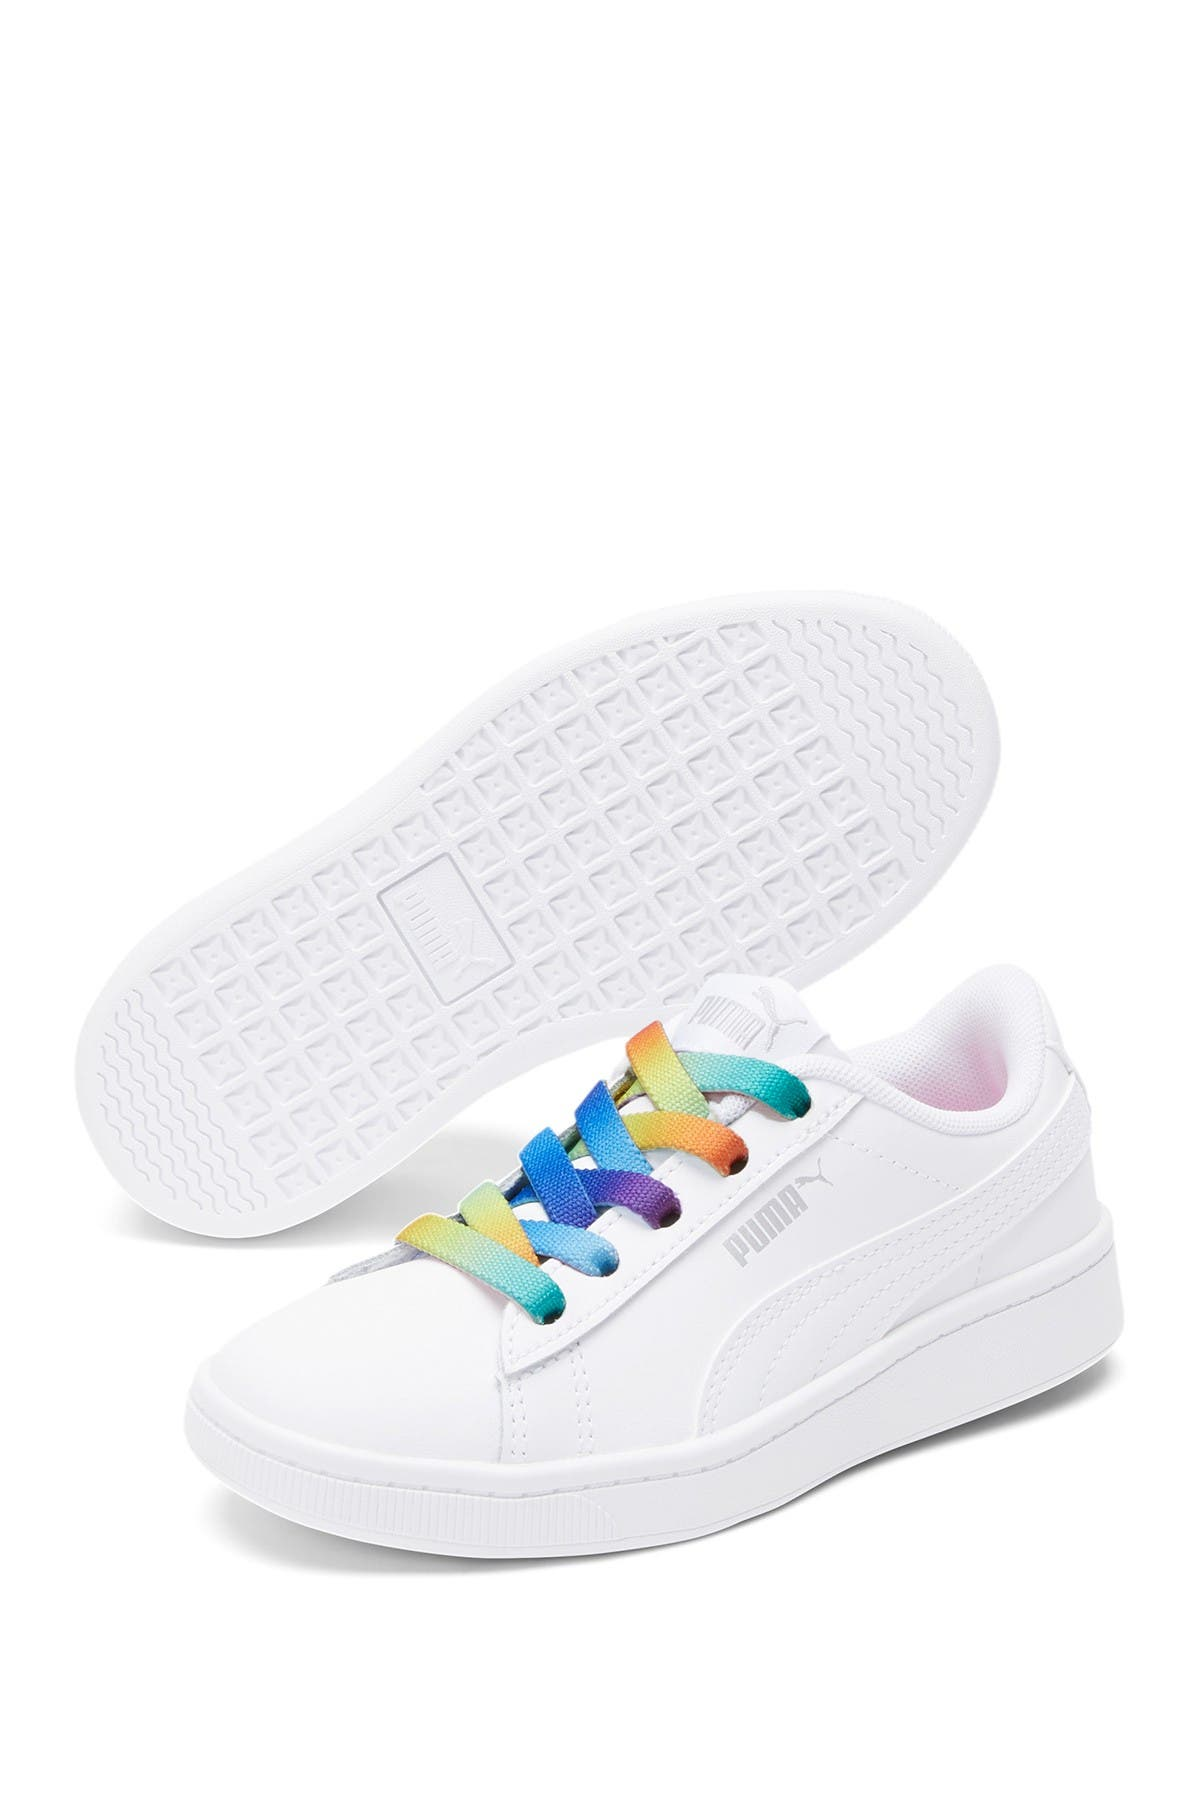 Image of PUMA Vikky V2 Rainbow Lace-Up Sneaker